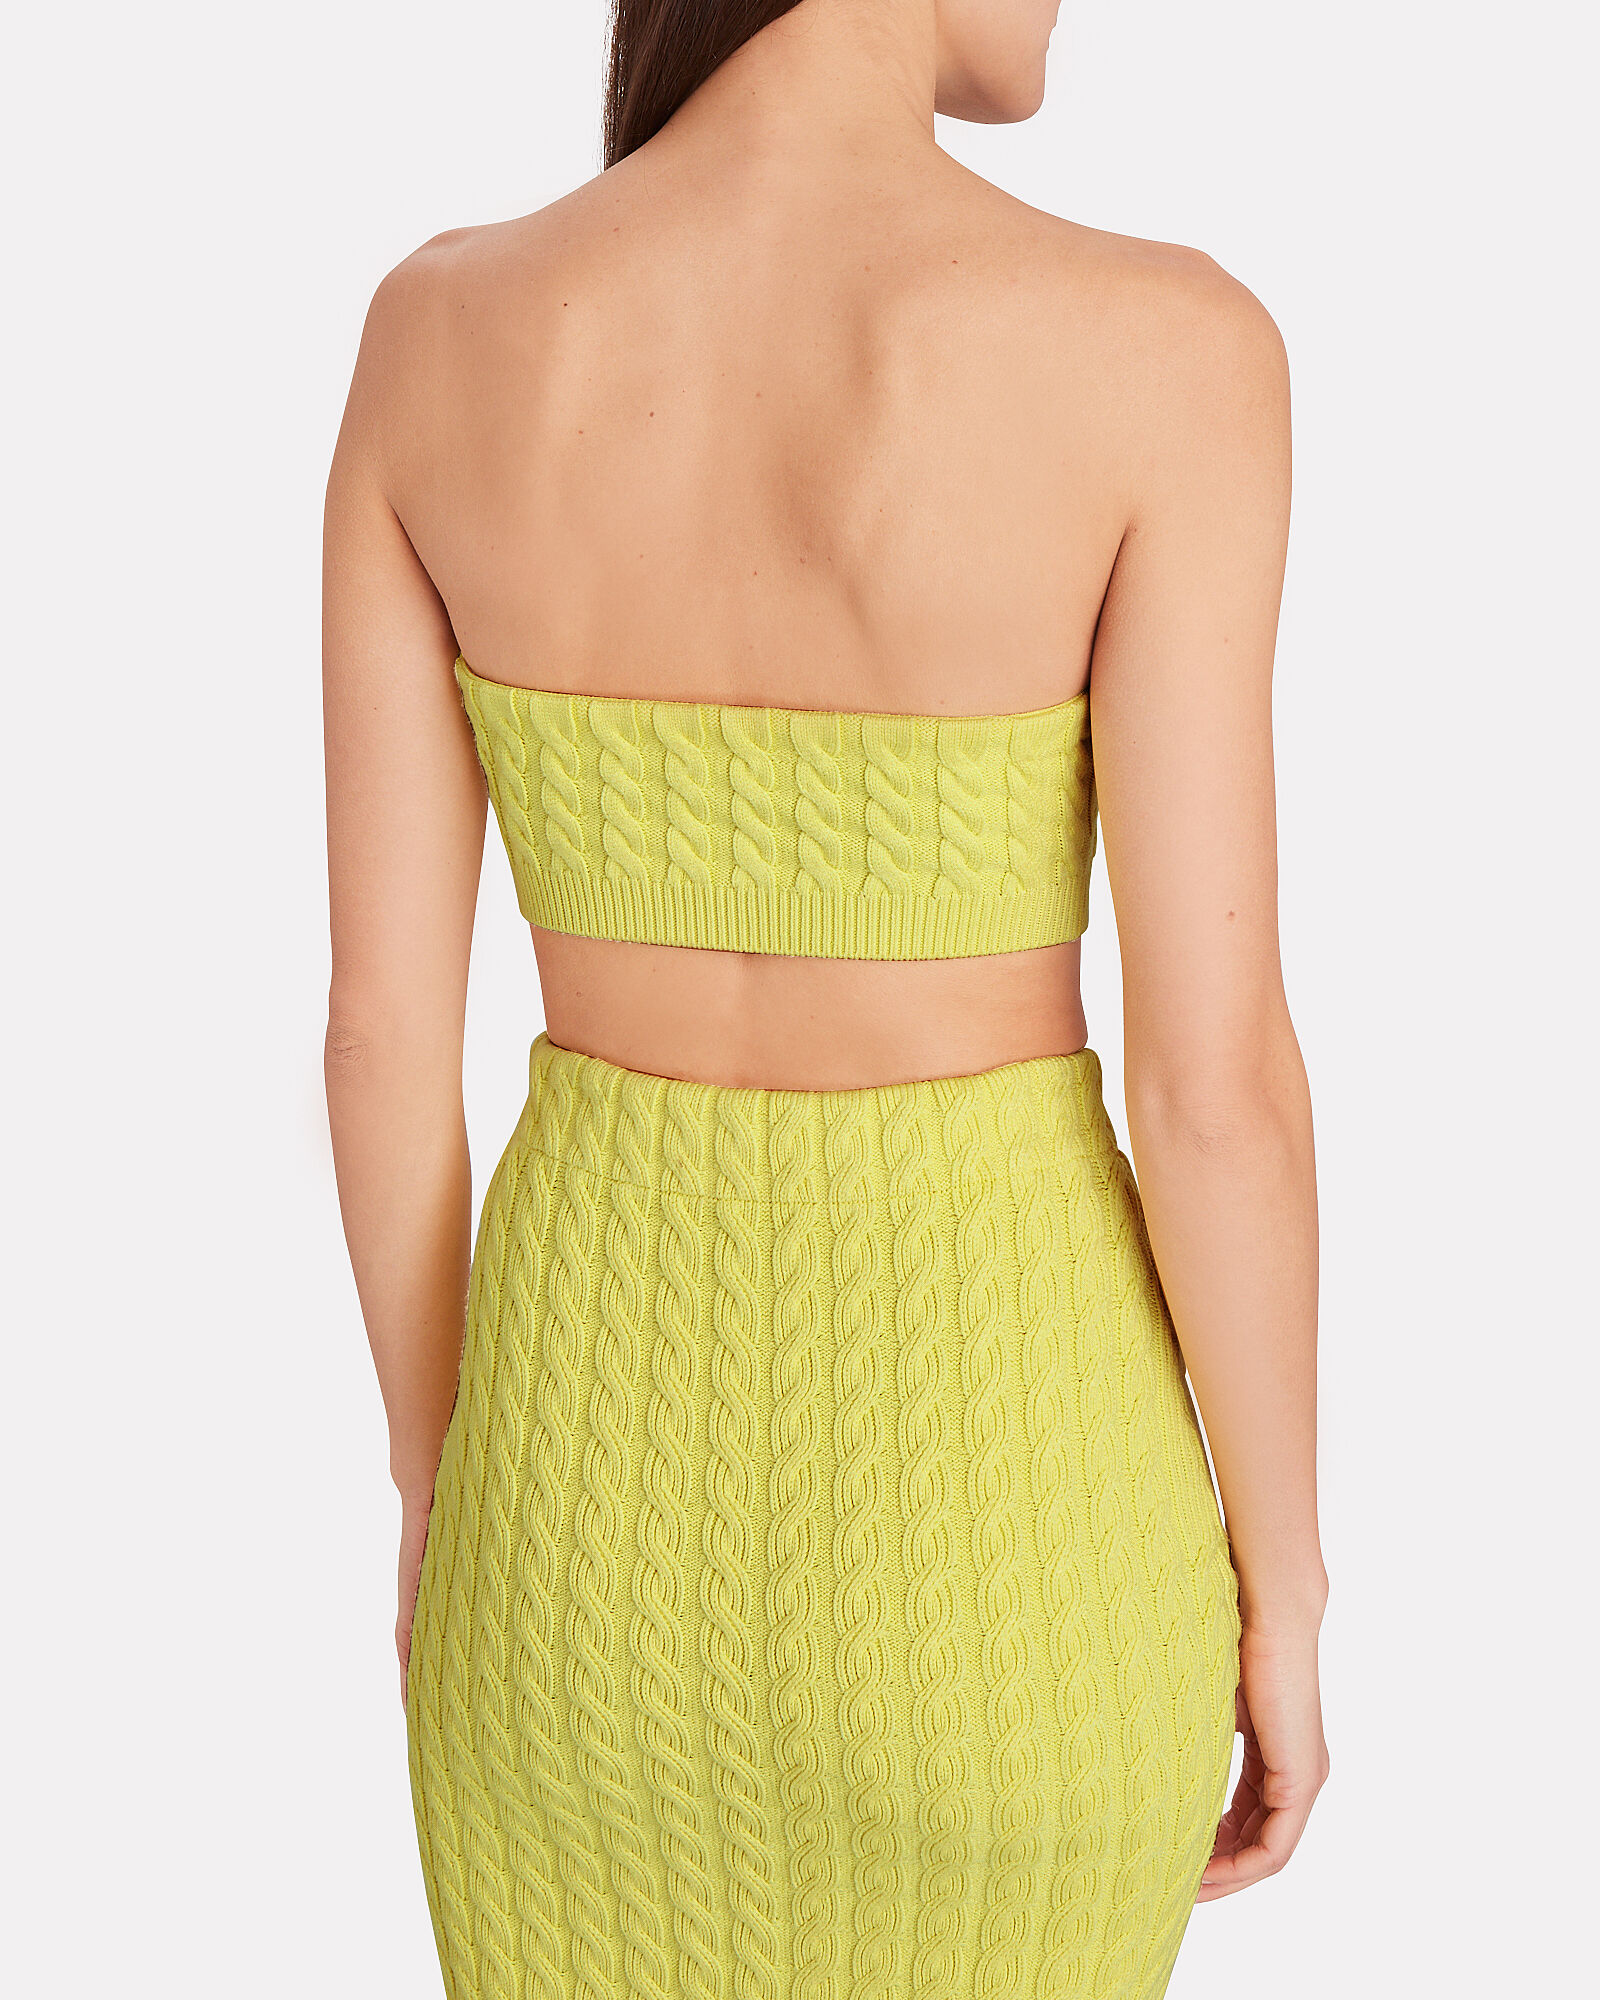 Umeko Cable Knit Bandeau, YELLOW, hi-res